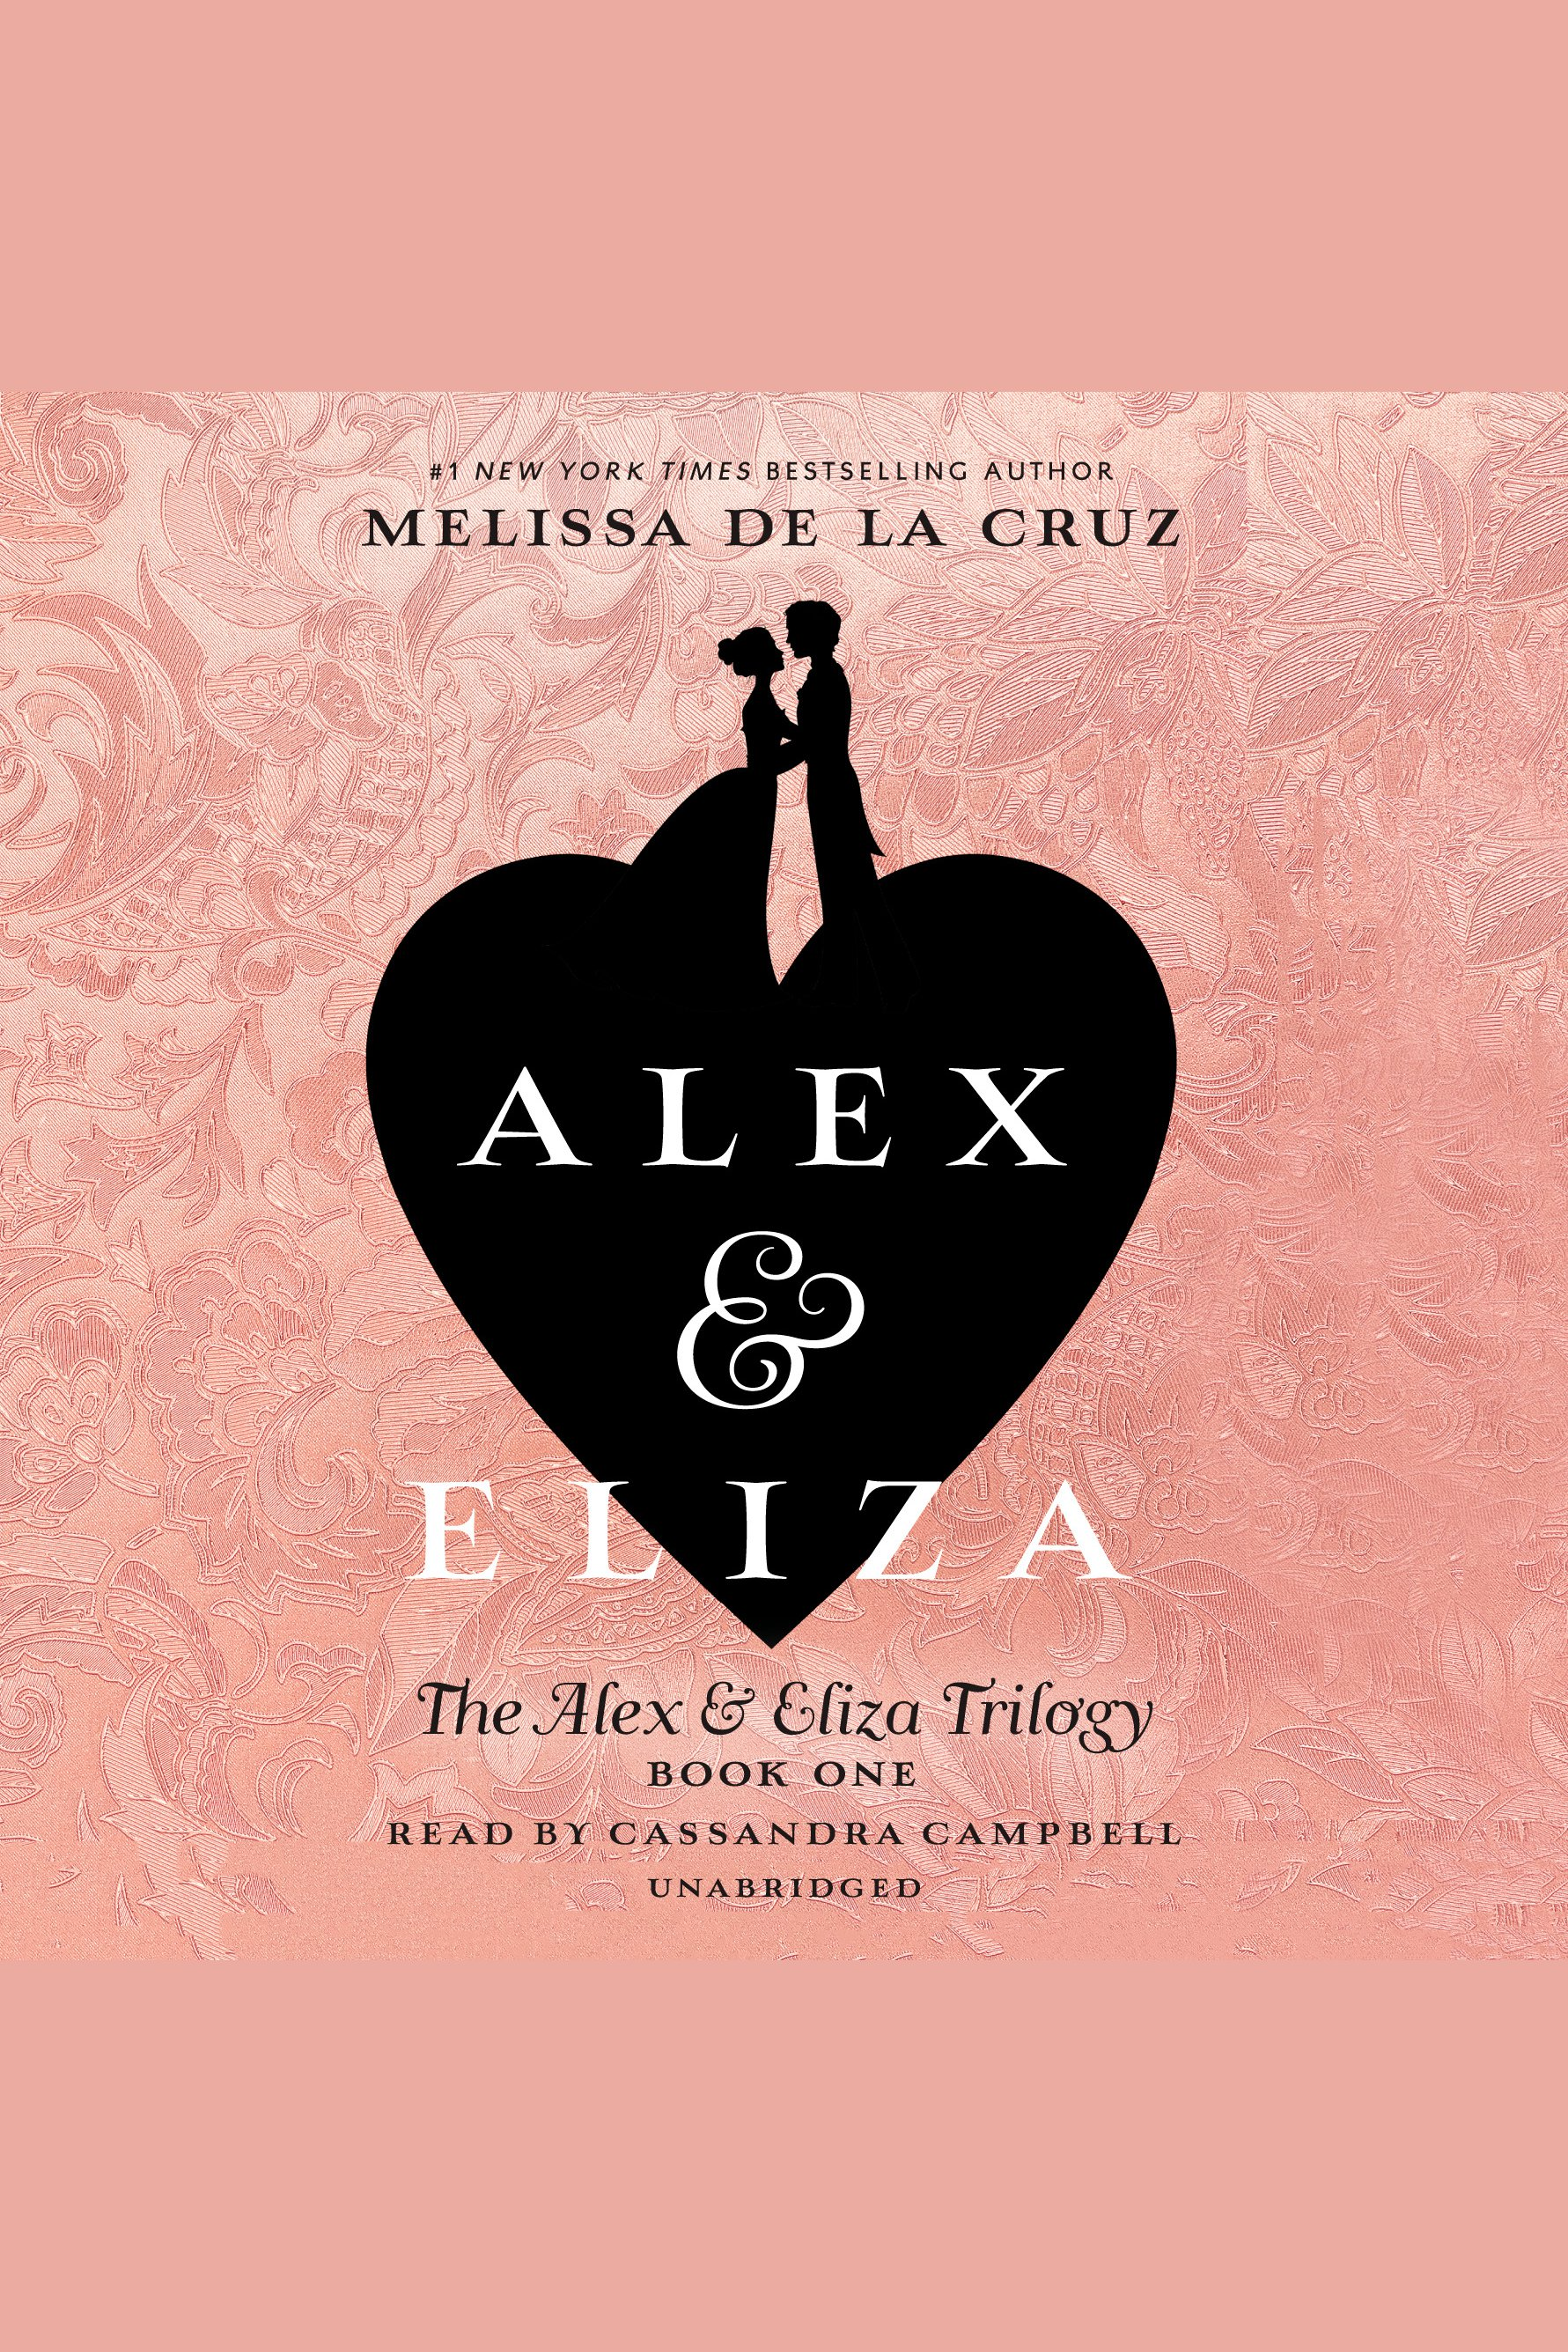 Alex & Eliza [AudioEbook] : a love story